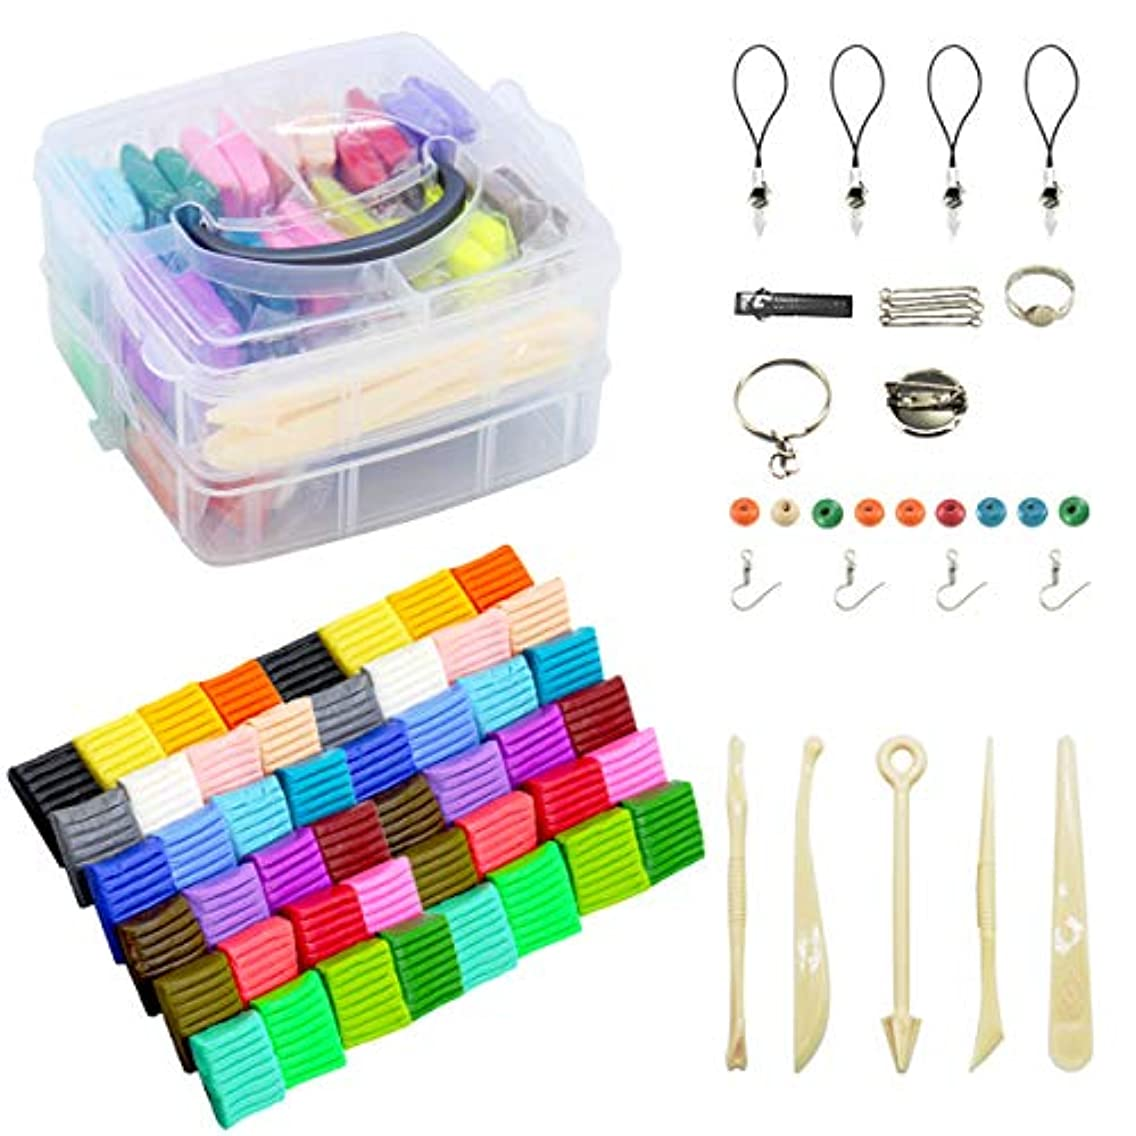 Rewiss 24 DIY Mixed Colored Polymer Clay Soft Oven Baking Modelling Clay,Moulding Colorful Fimo Effect Clay Blocks with Tools and Mult-Mold Accessories,2.2 Lbs